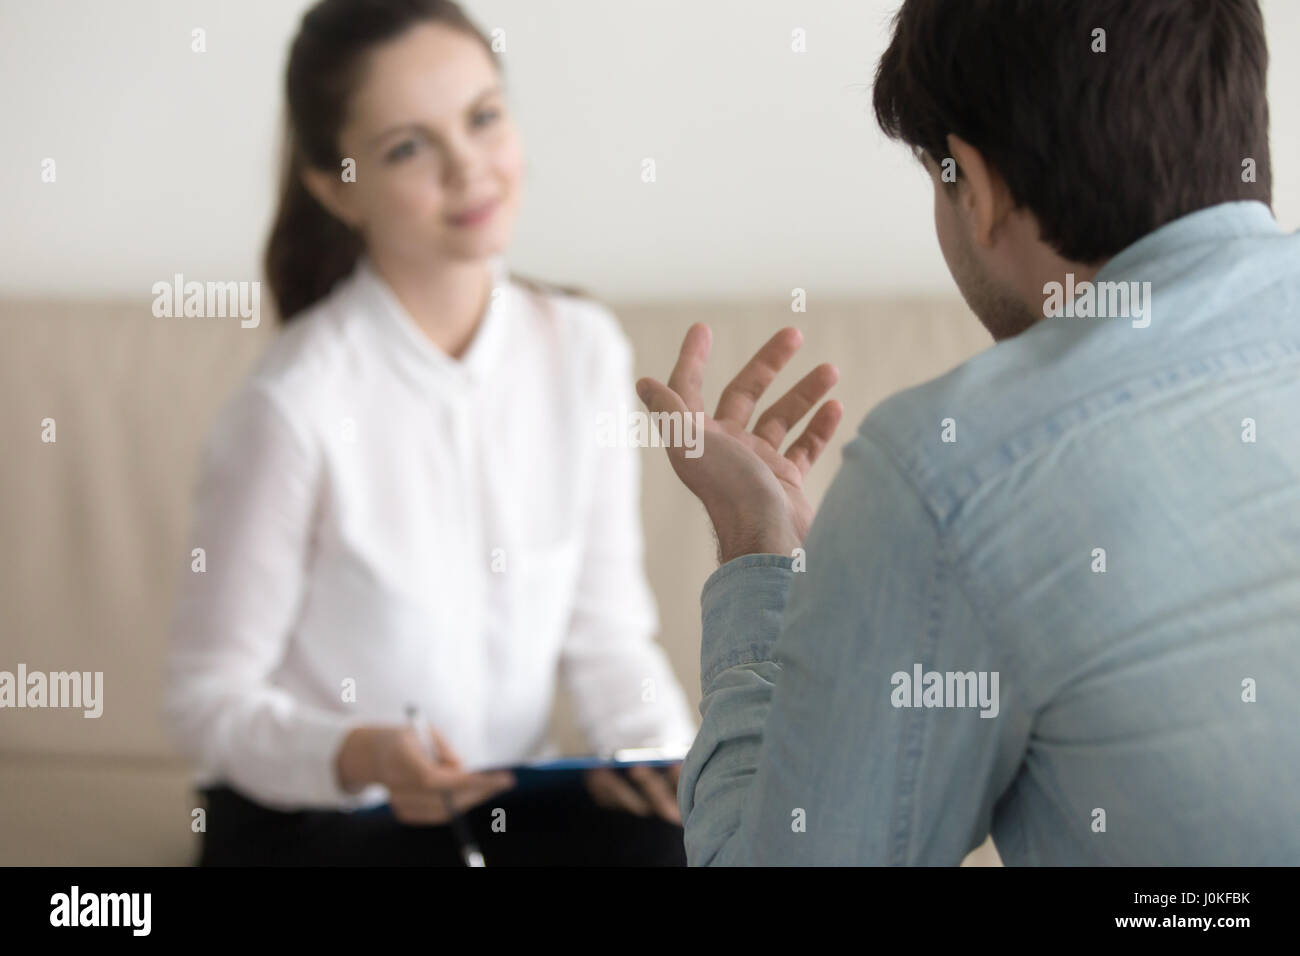 Female psychologist consulting male patient, job interview, busi - Stock Image